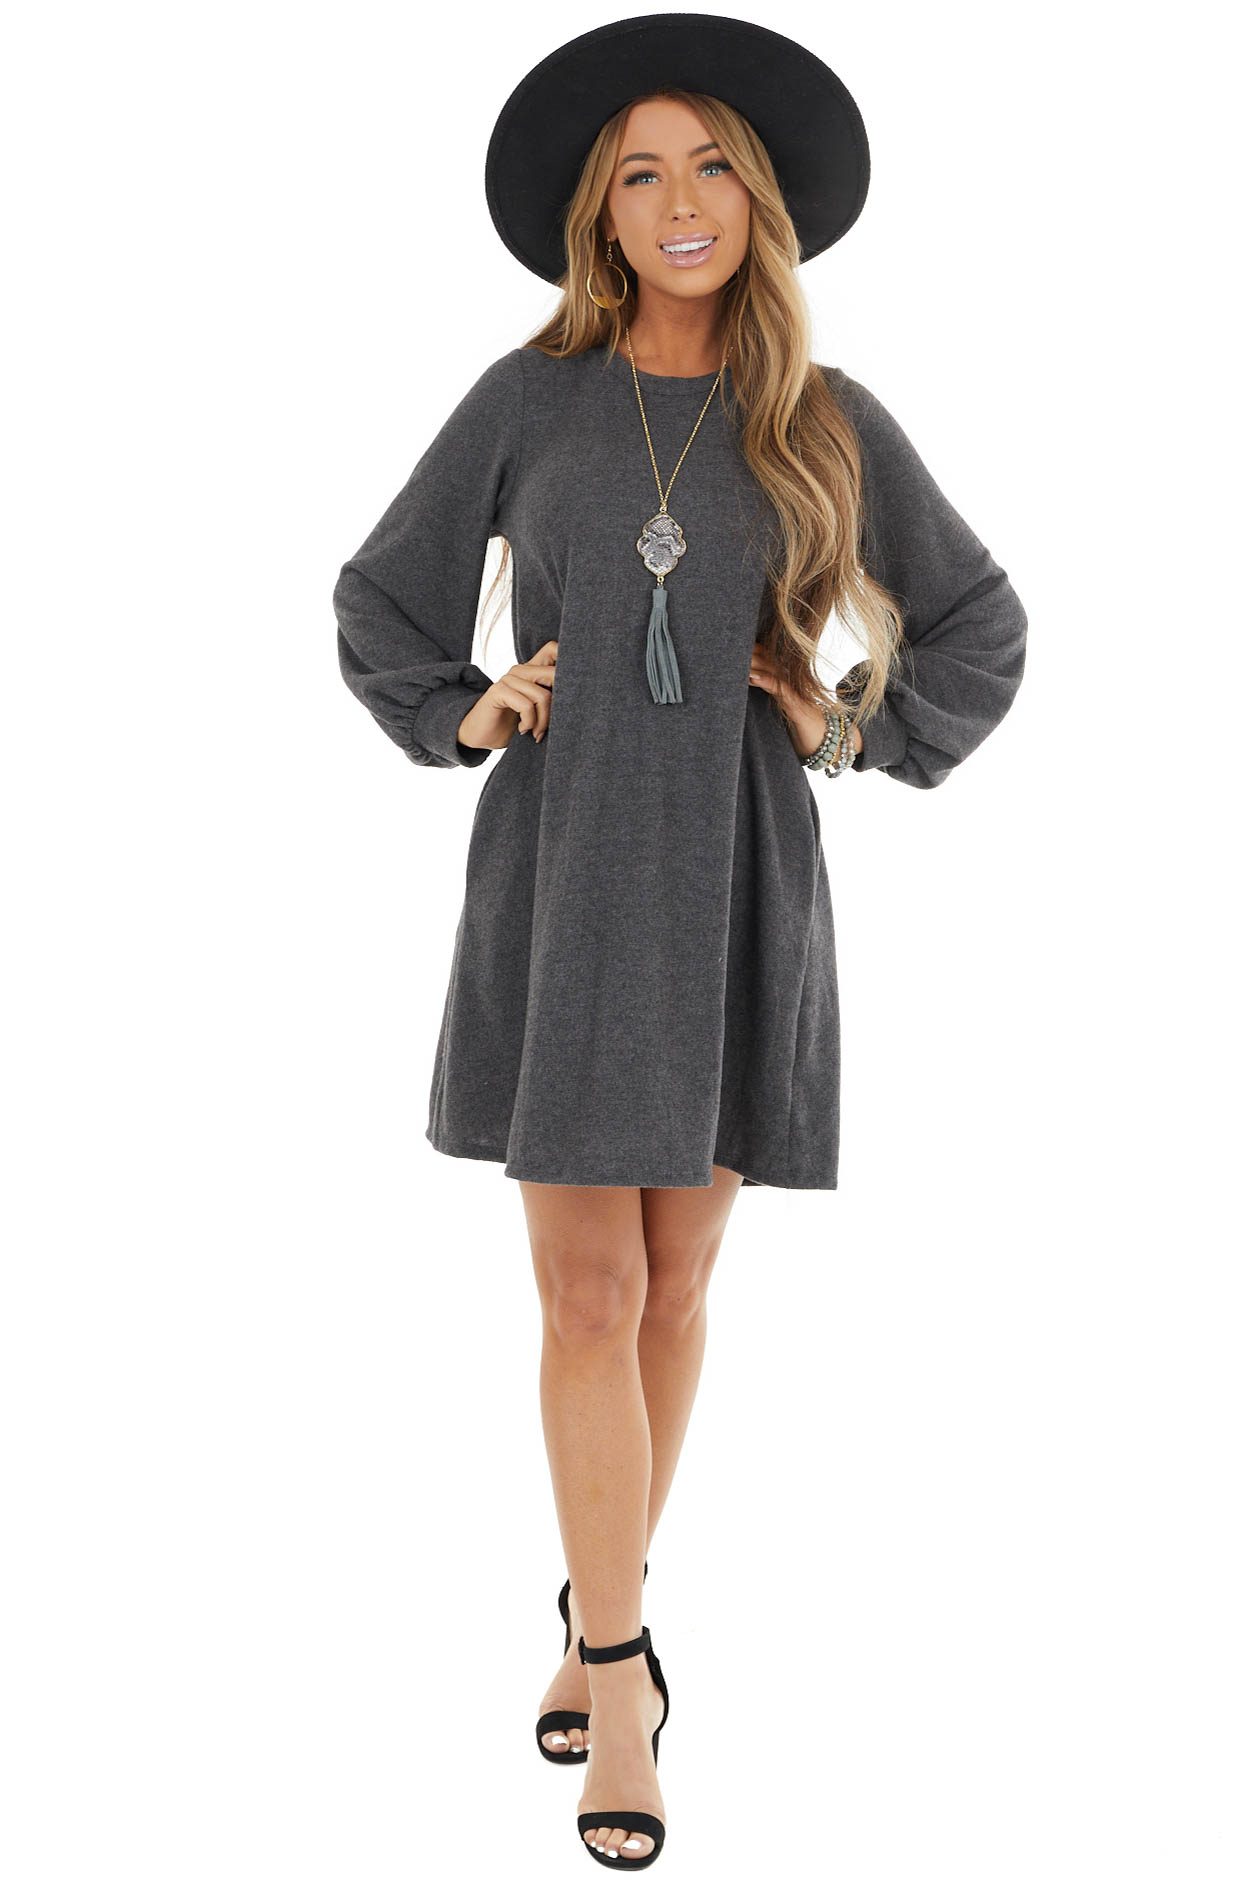 Charcoal Soft Knit Short Dress with Long Bubble Sleeve